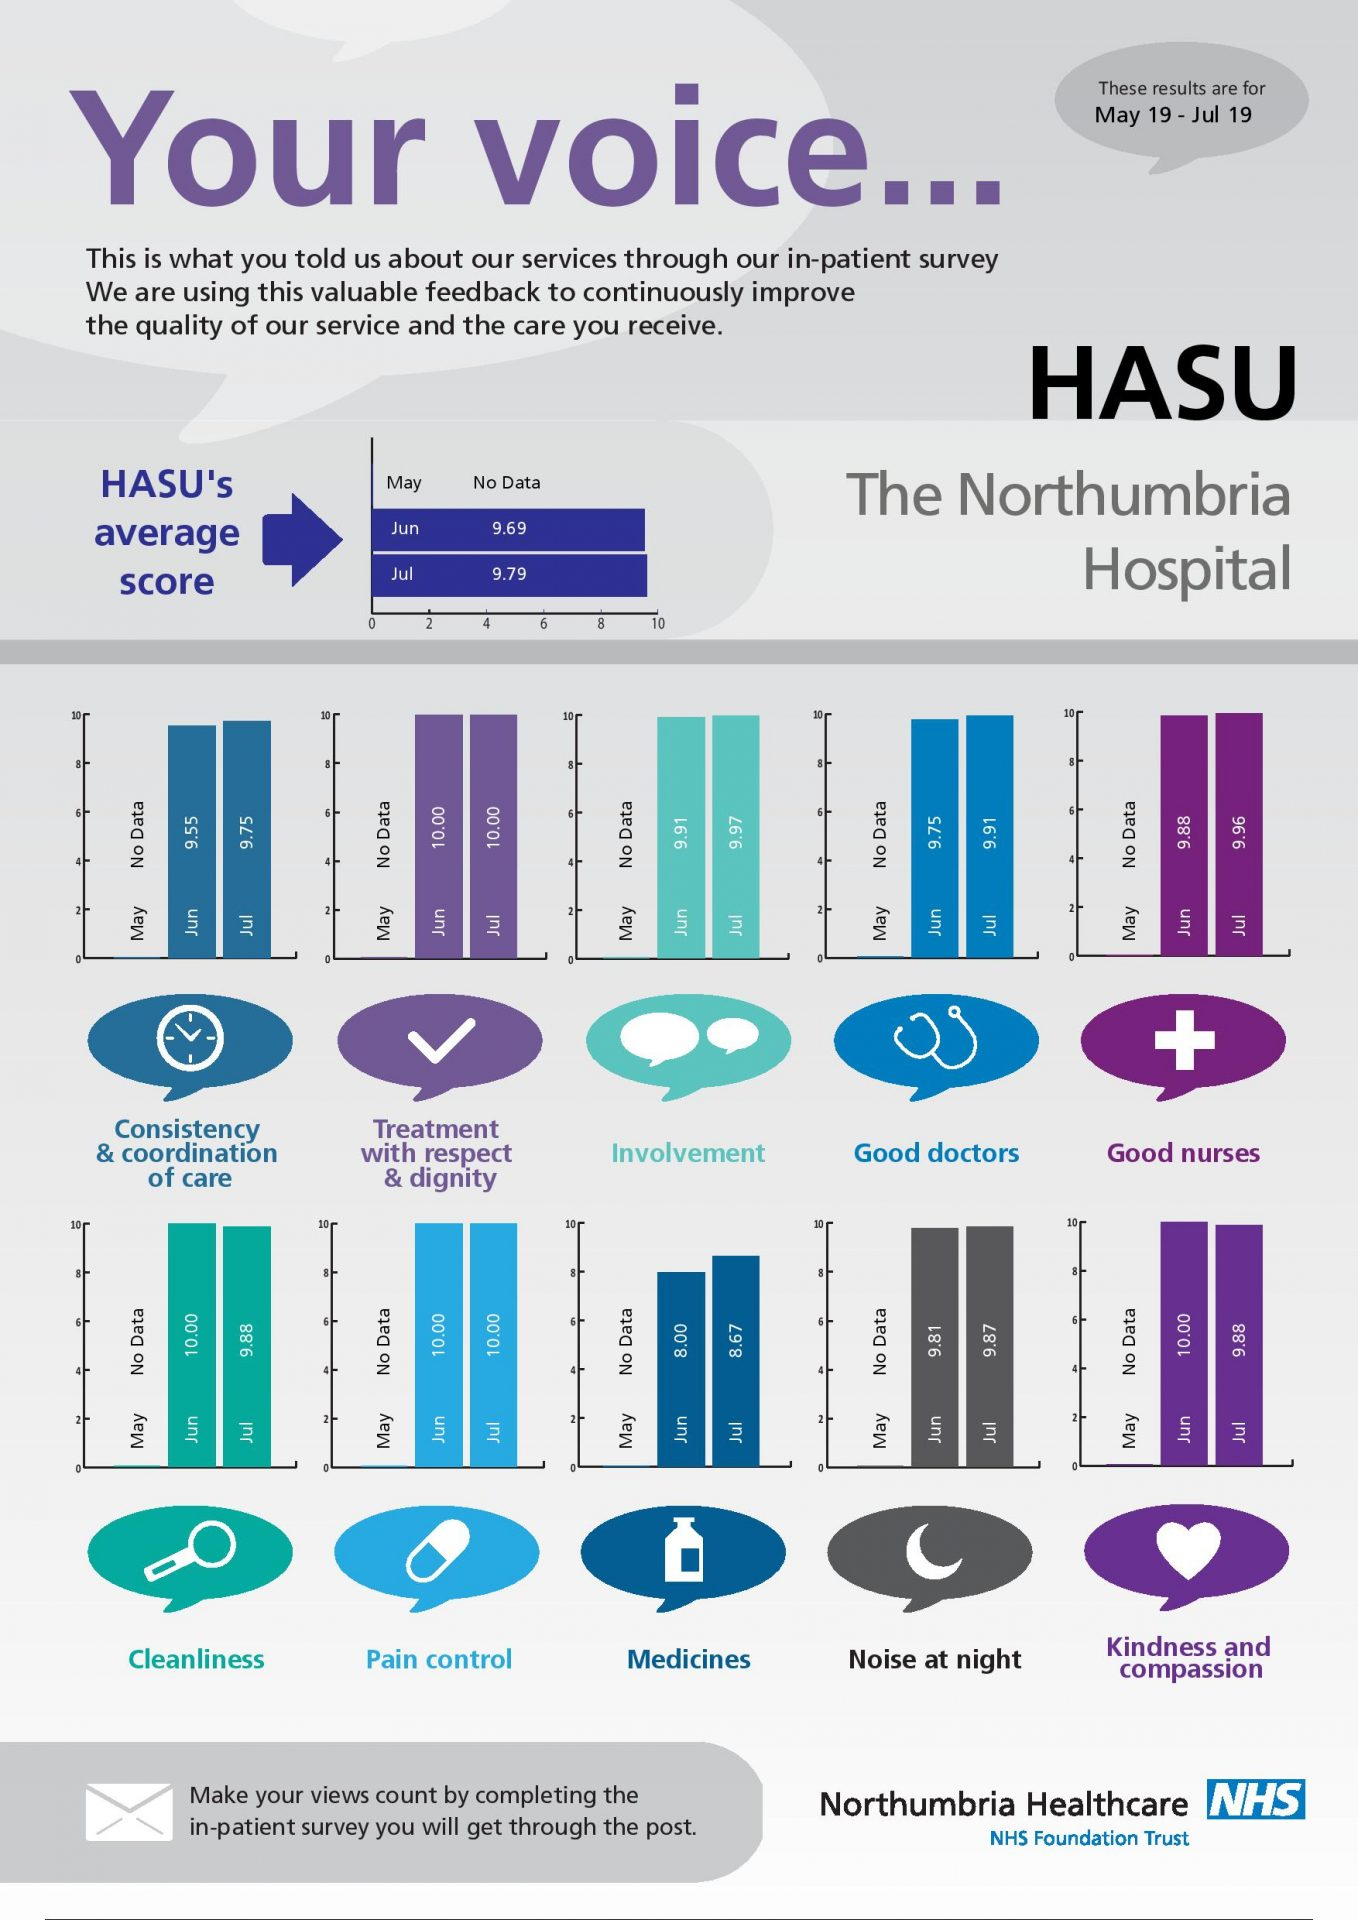 The Northumbria Hospital - HASU-page-001